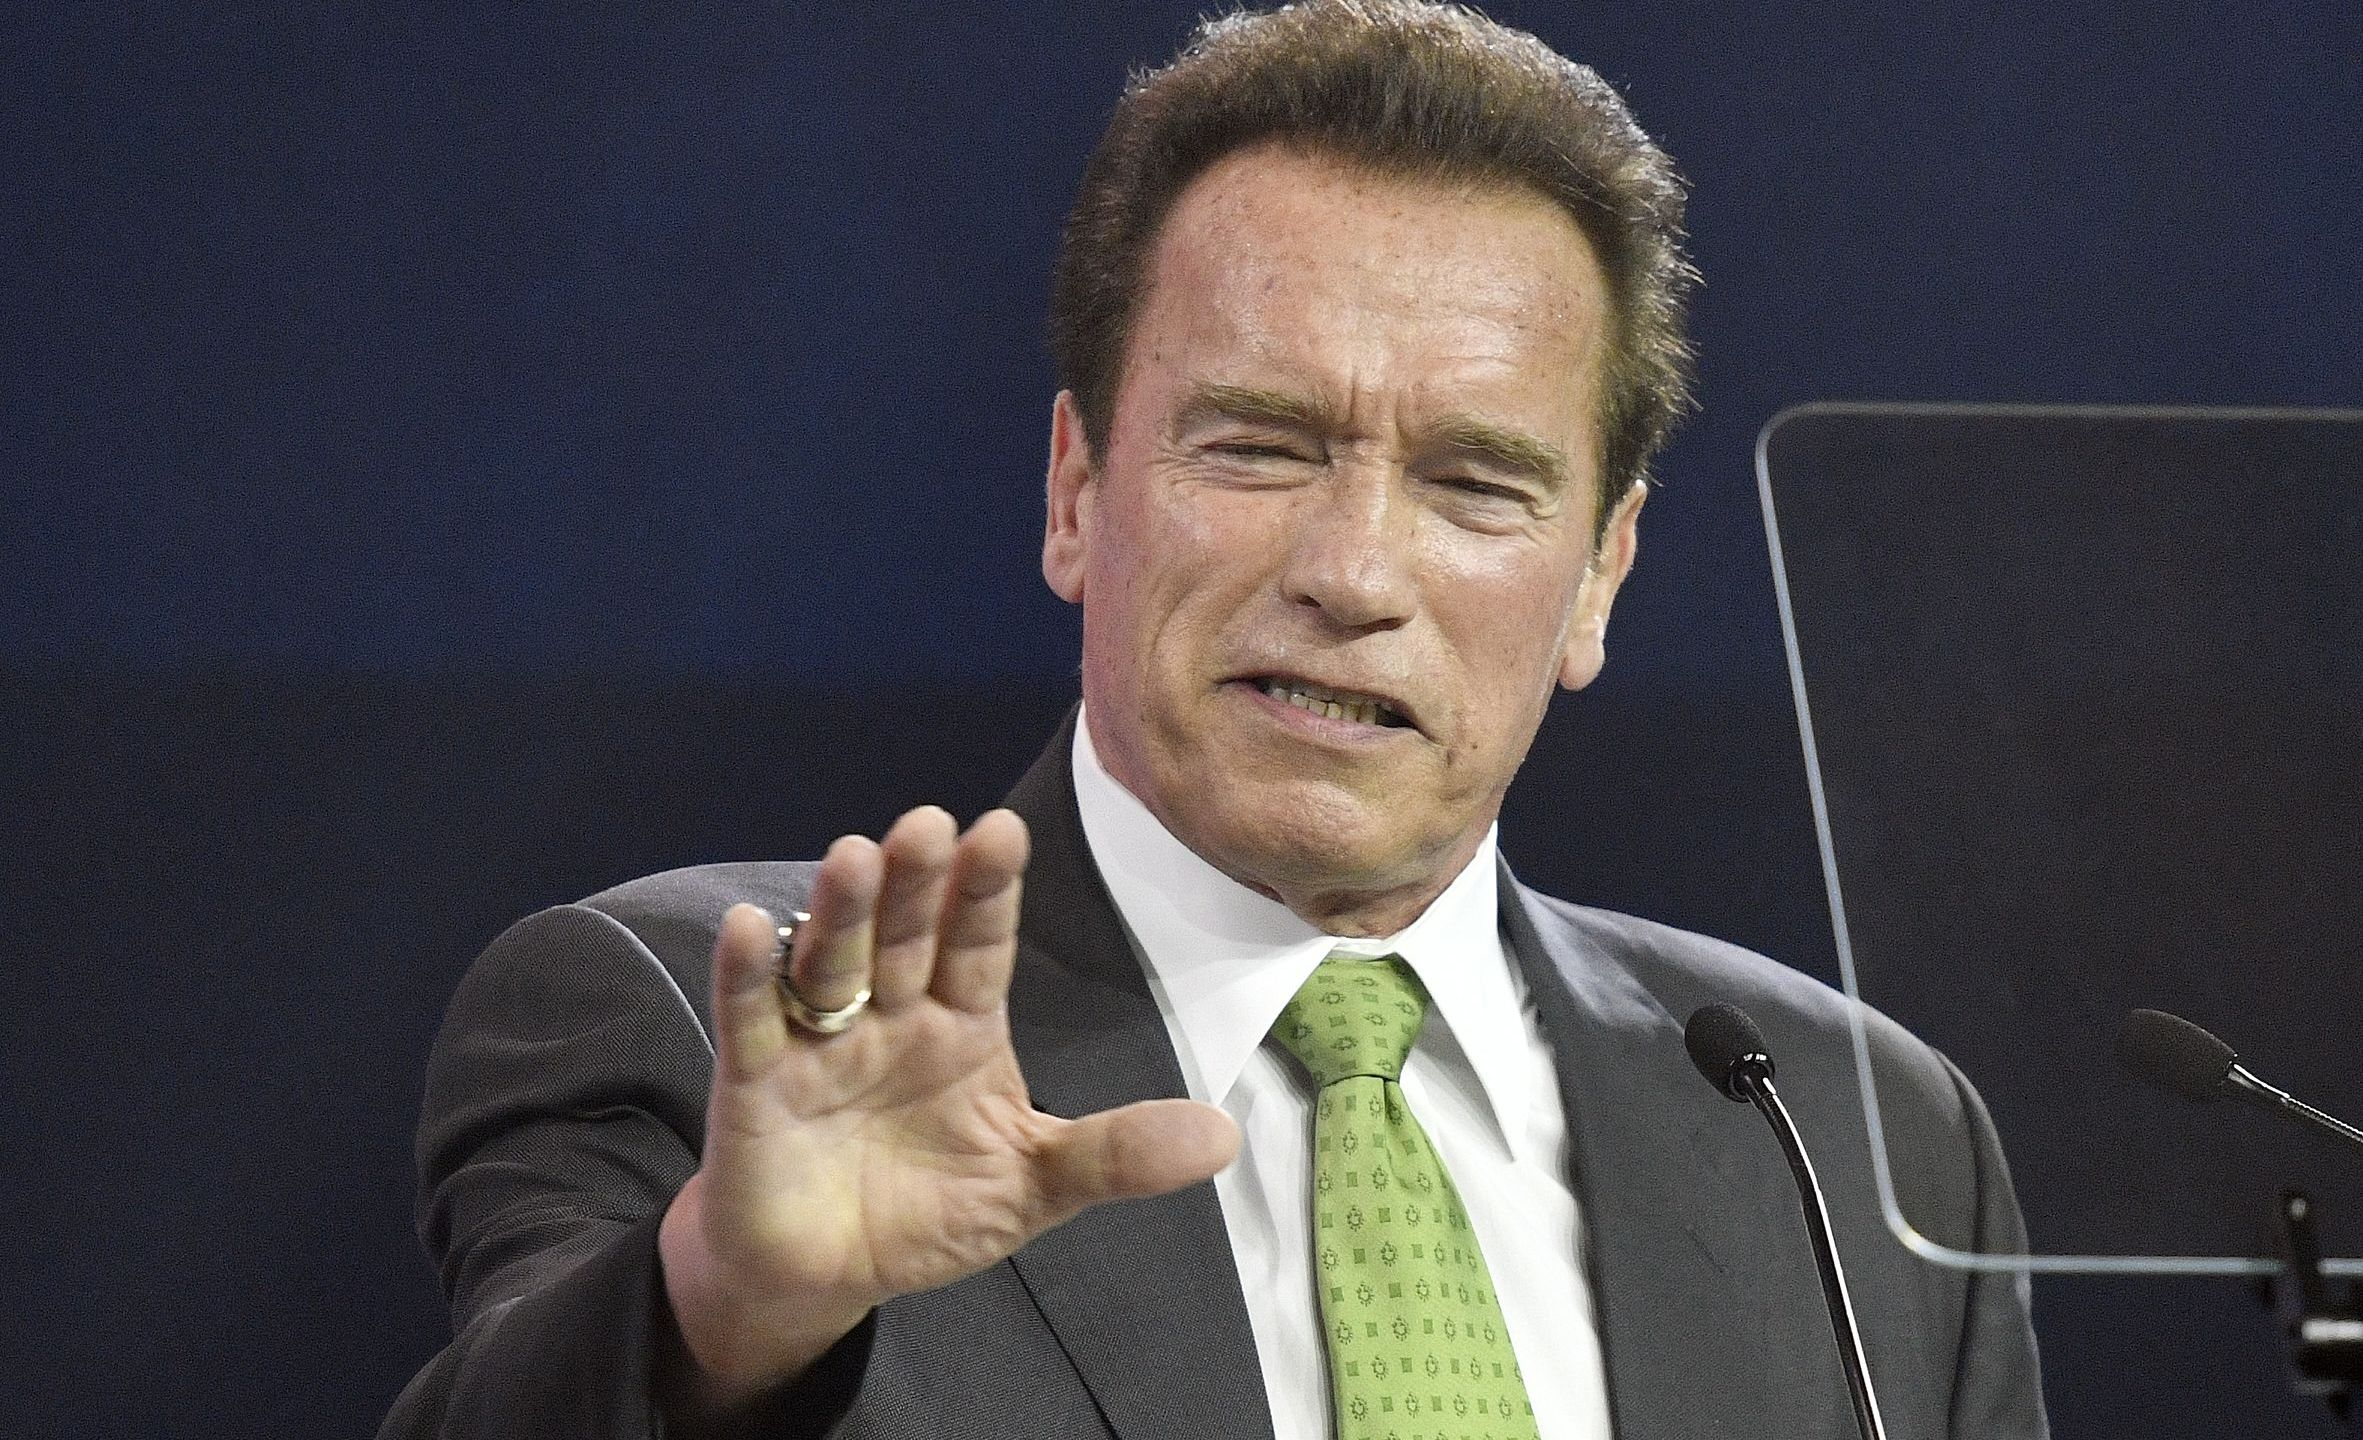 """Arnold Schwarzenegger delivers a speech during the """"R20 Austrian World Summit"""" on climate change in Vienna, Austria on May 15, 2018. (Credit: HANS PUNZ/AFP/Getty Images)"""